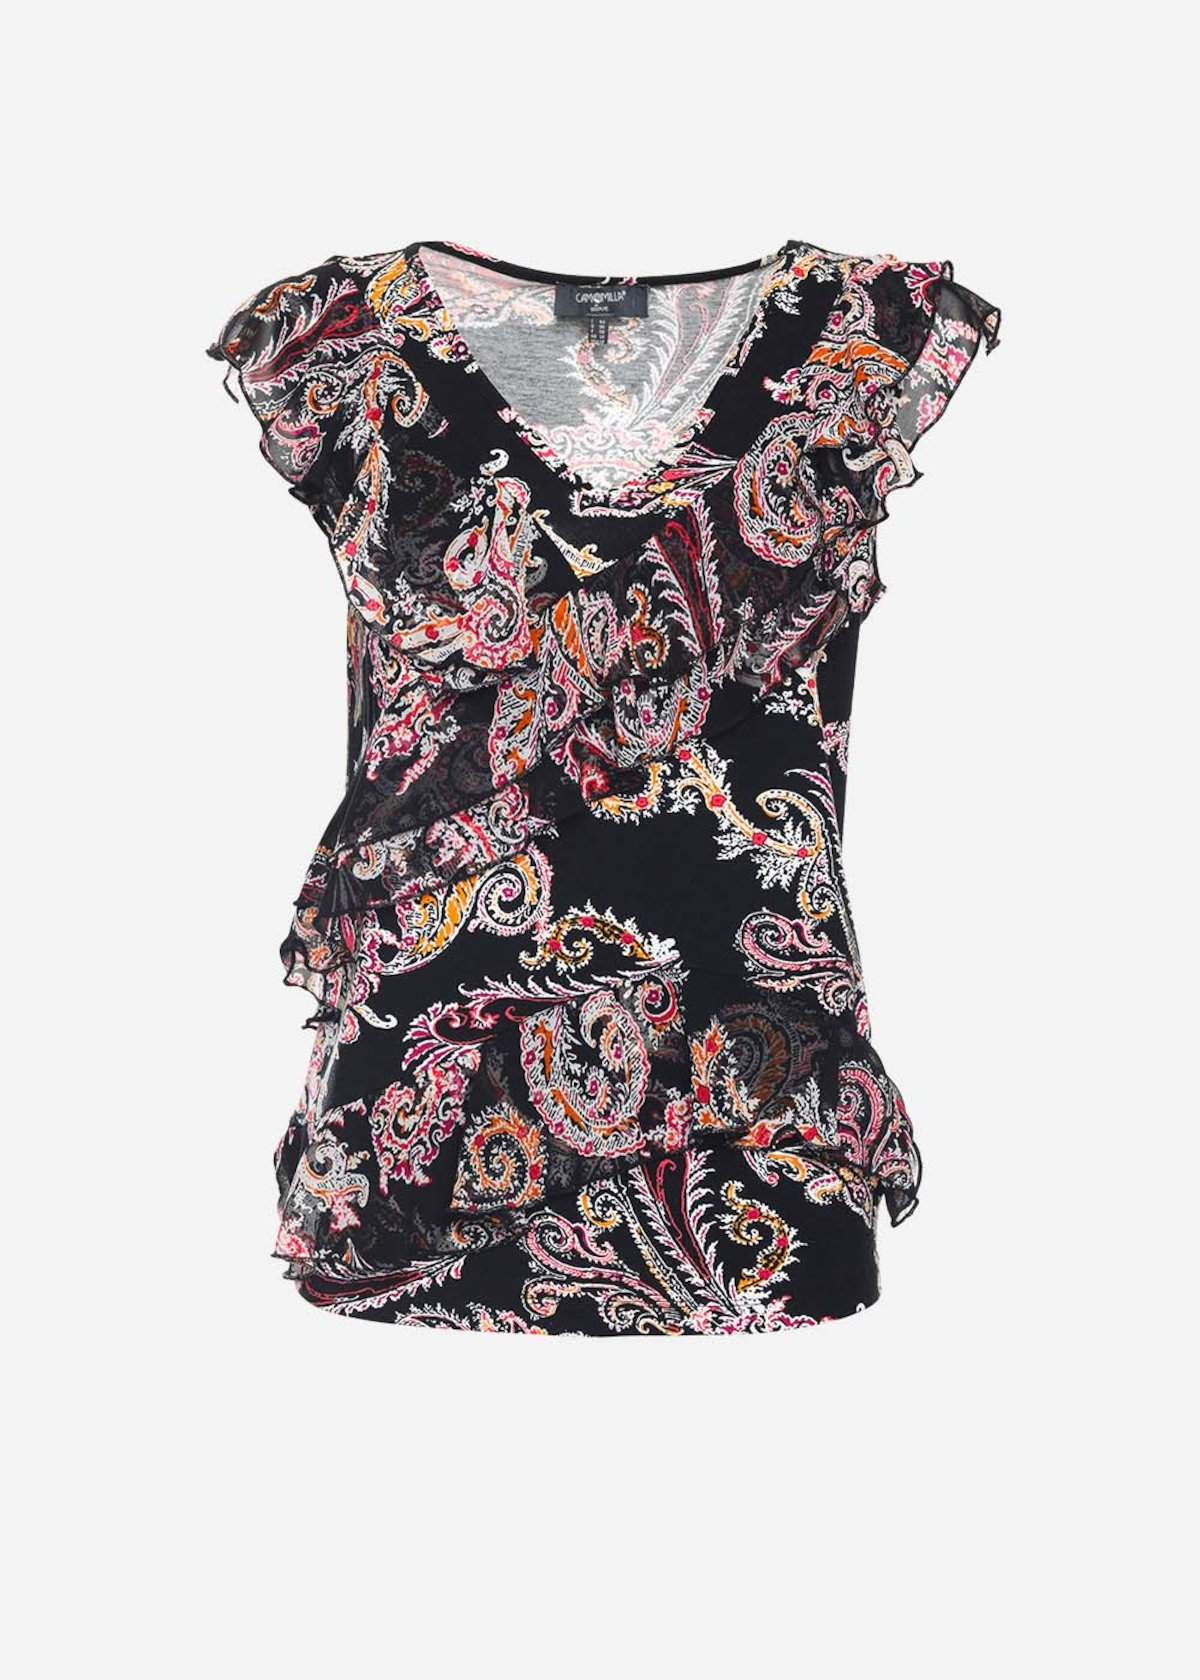 Tiko black top with patterned printing and shoulders-forward rouches - Black / White Fantasia